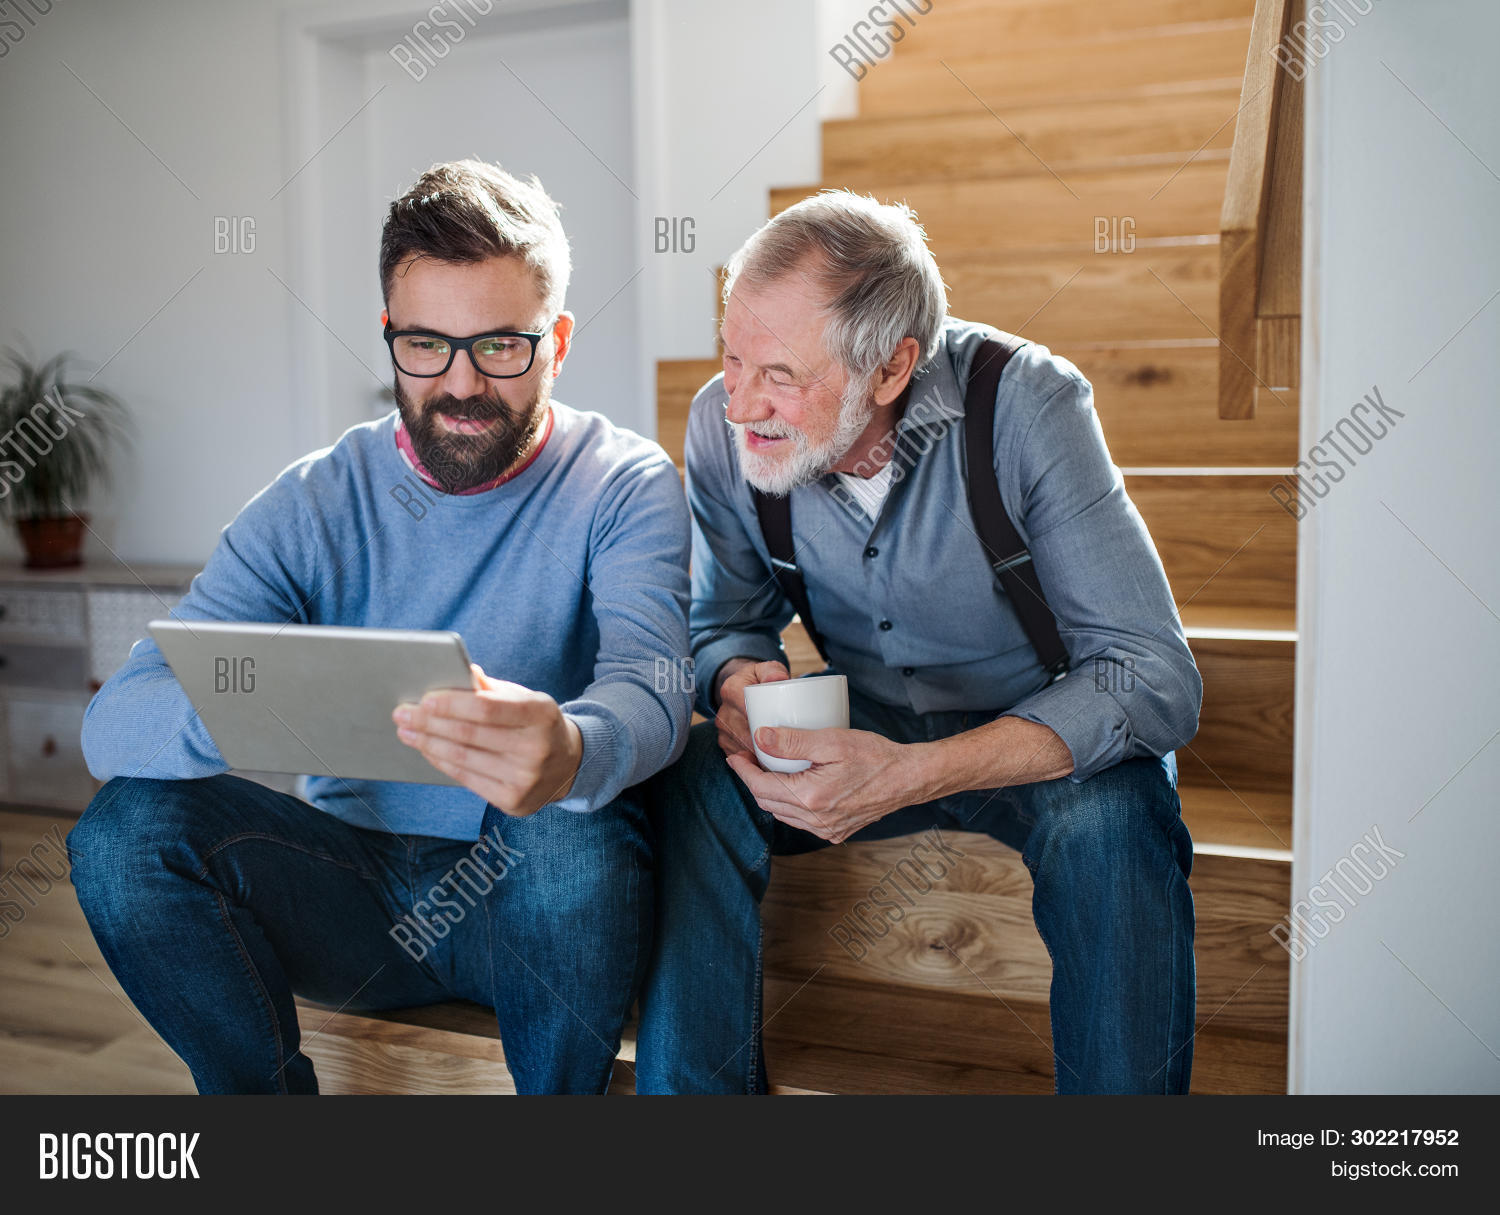 adult,apartment,beard,bottom,caucasian,coffee,computer,converasation,cup,dad,daddy,day,discussion,family,fathers,flat,generations,happy,hipster,home,house,indoors,inside,jeans,leisure,love,male,mature,men,mustache,old,parent,pc,people,quality,relationship,relaxing,senior,sitting,son,spending,stairs,tablet,talk,talking,time,together,two,wooden